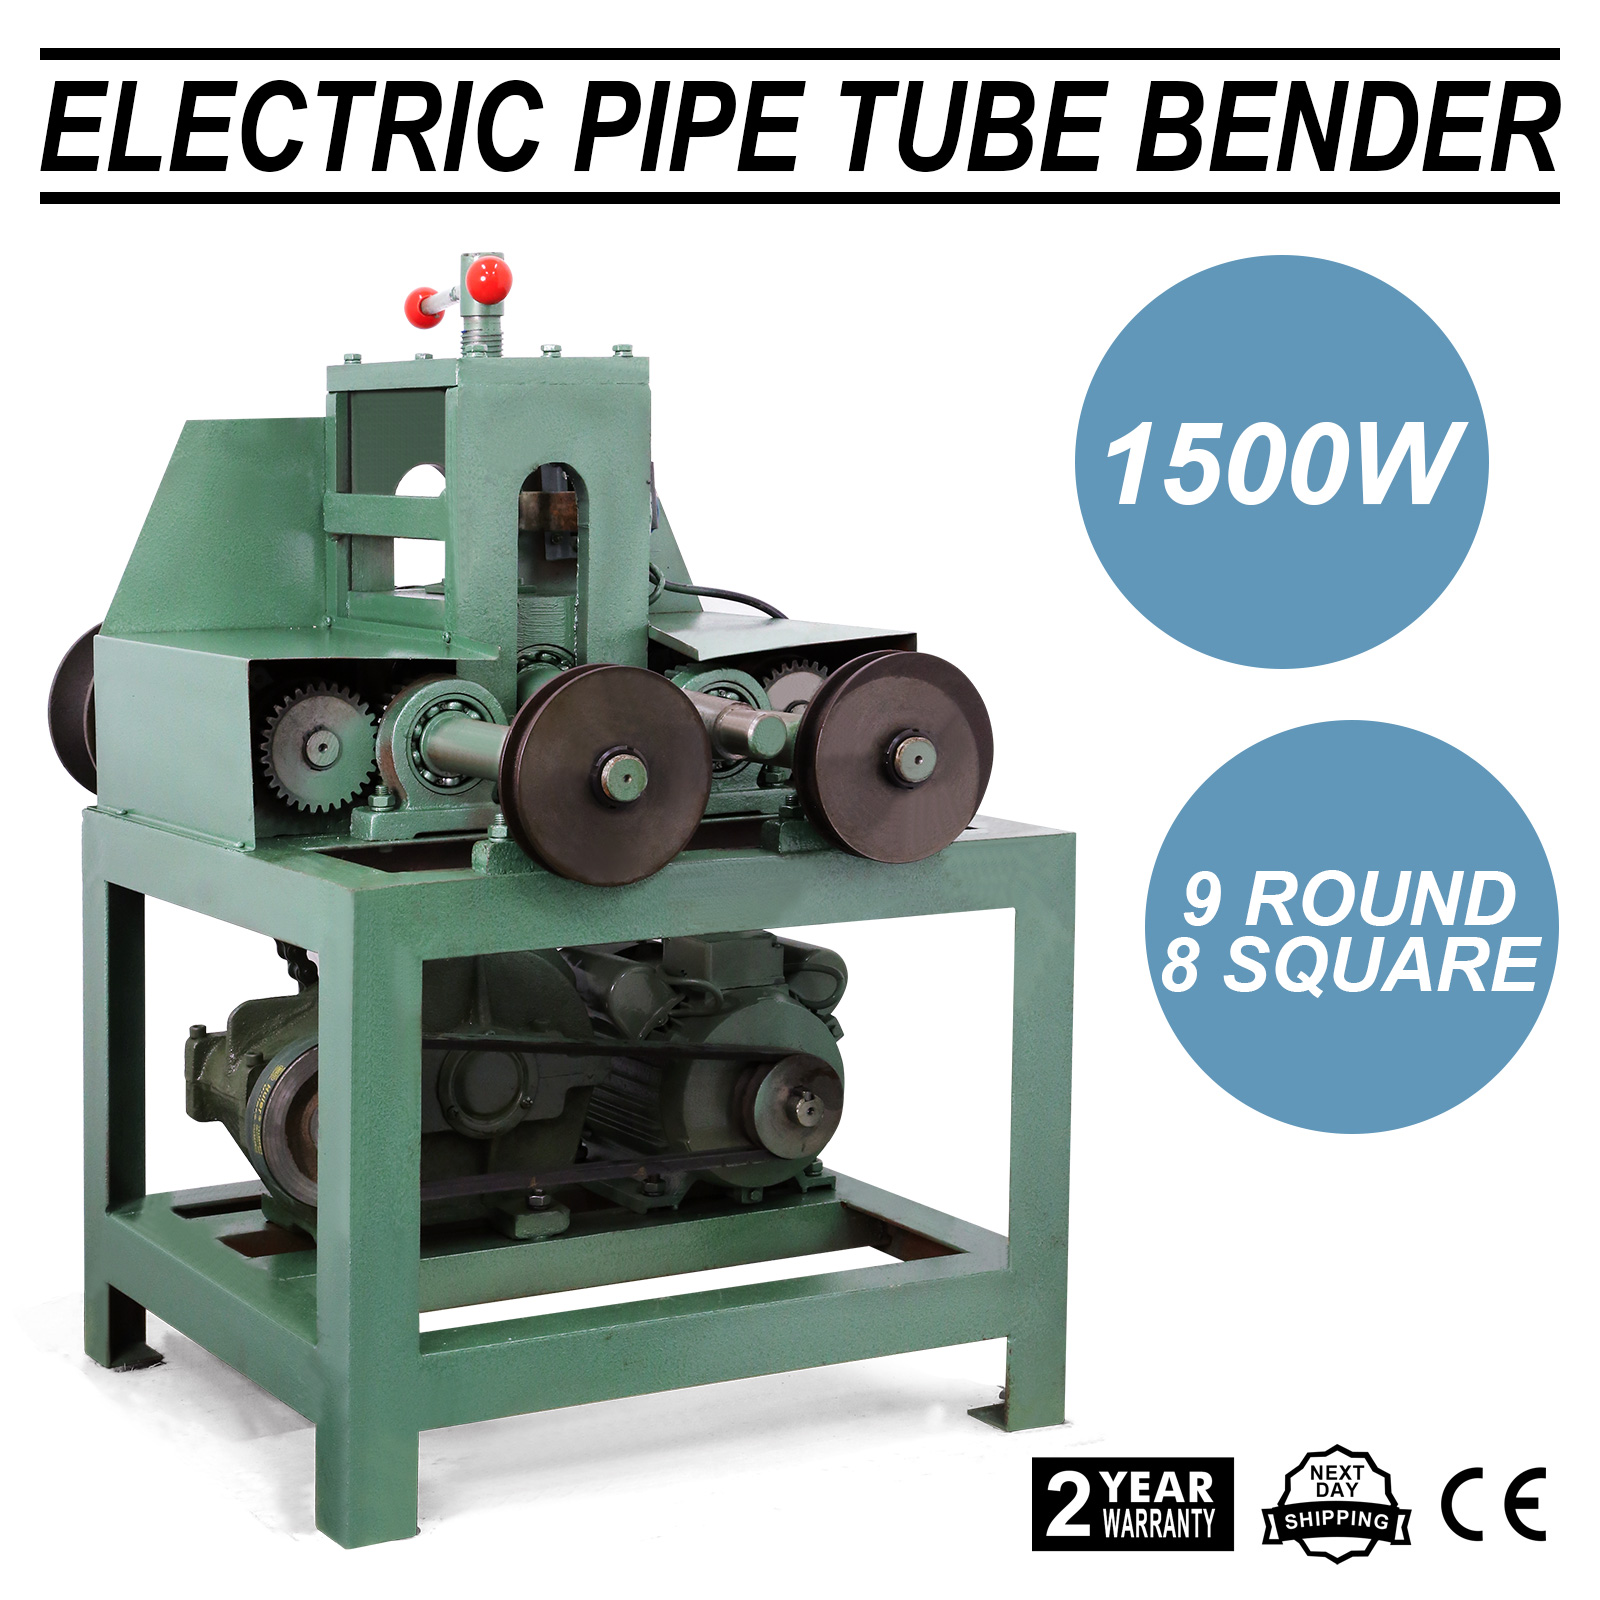 Details about 110 Volt Electric Tube Pipe Bender Roller Round-5/8-3